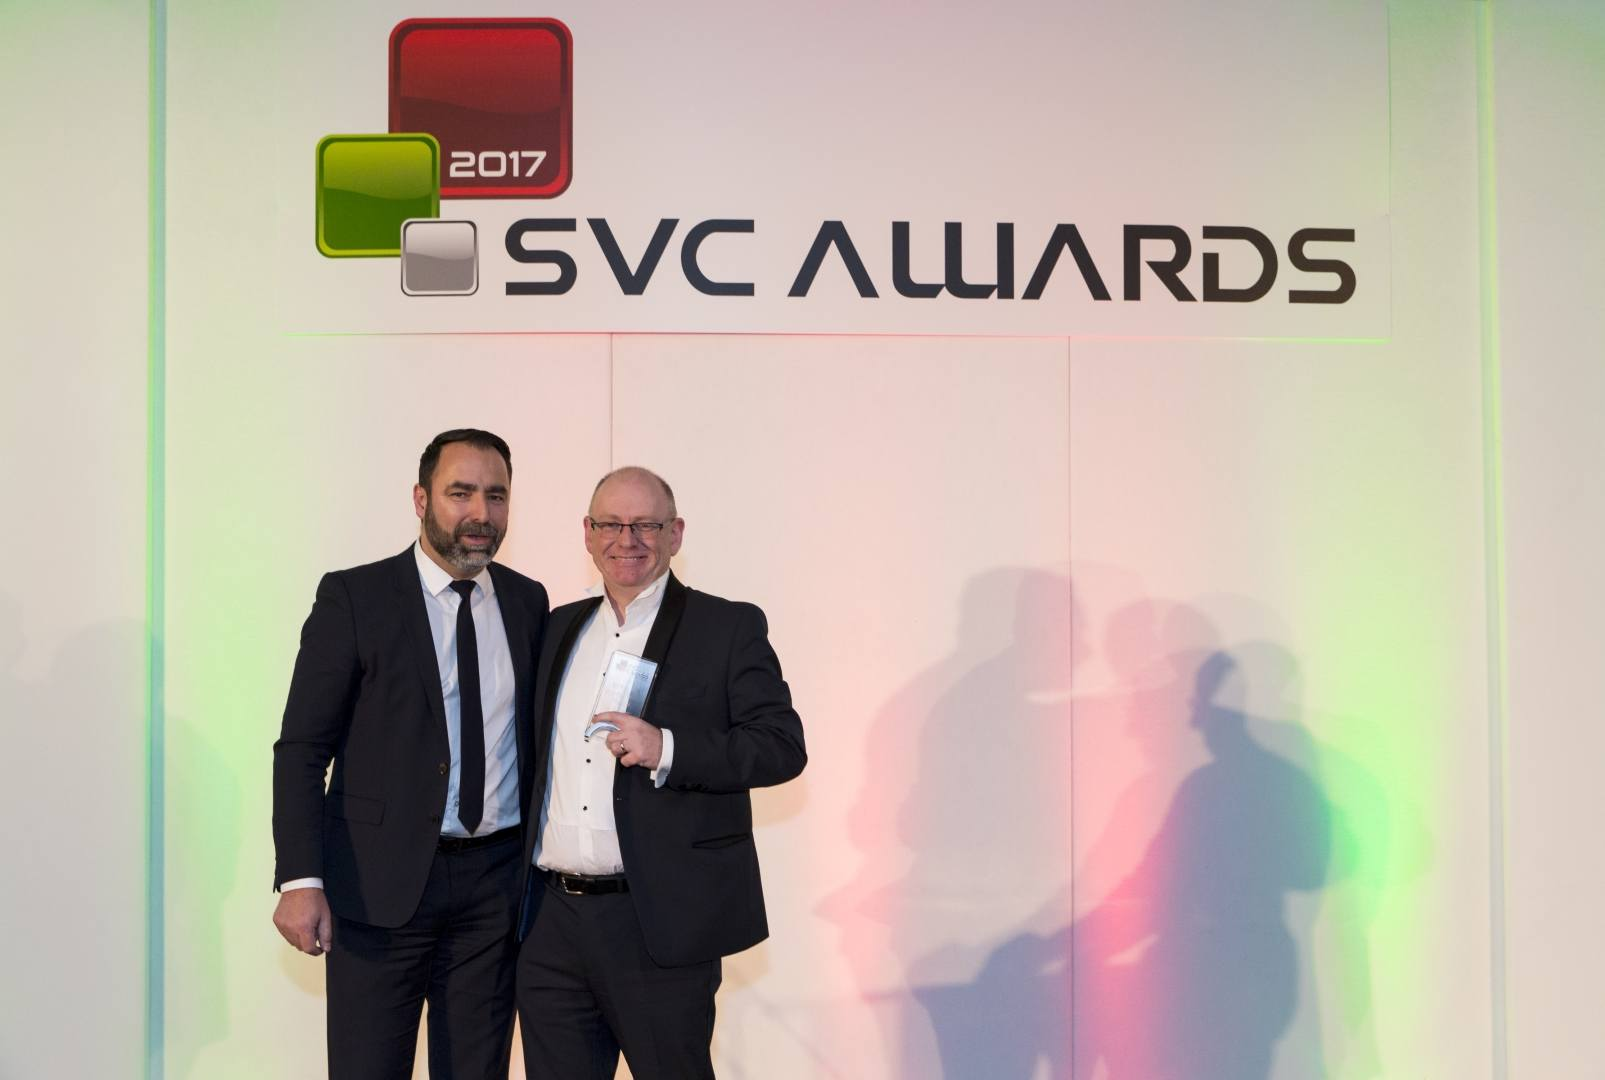 Colin Wright, VP Sales in EMEA for Altaro software, accepts the award